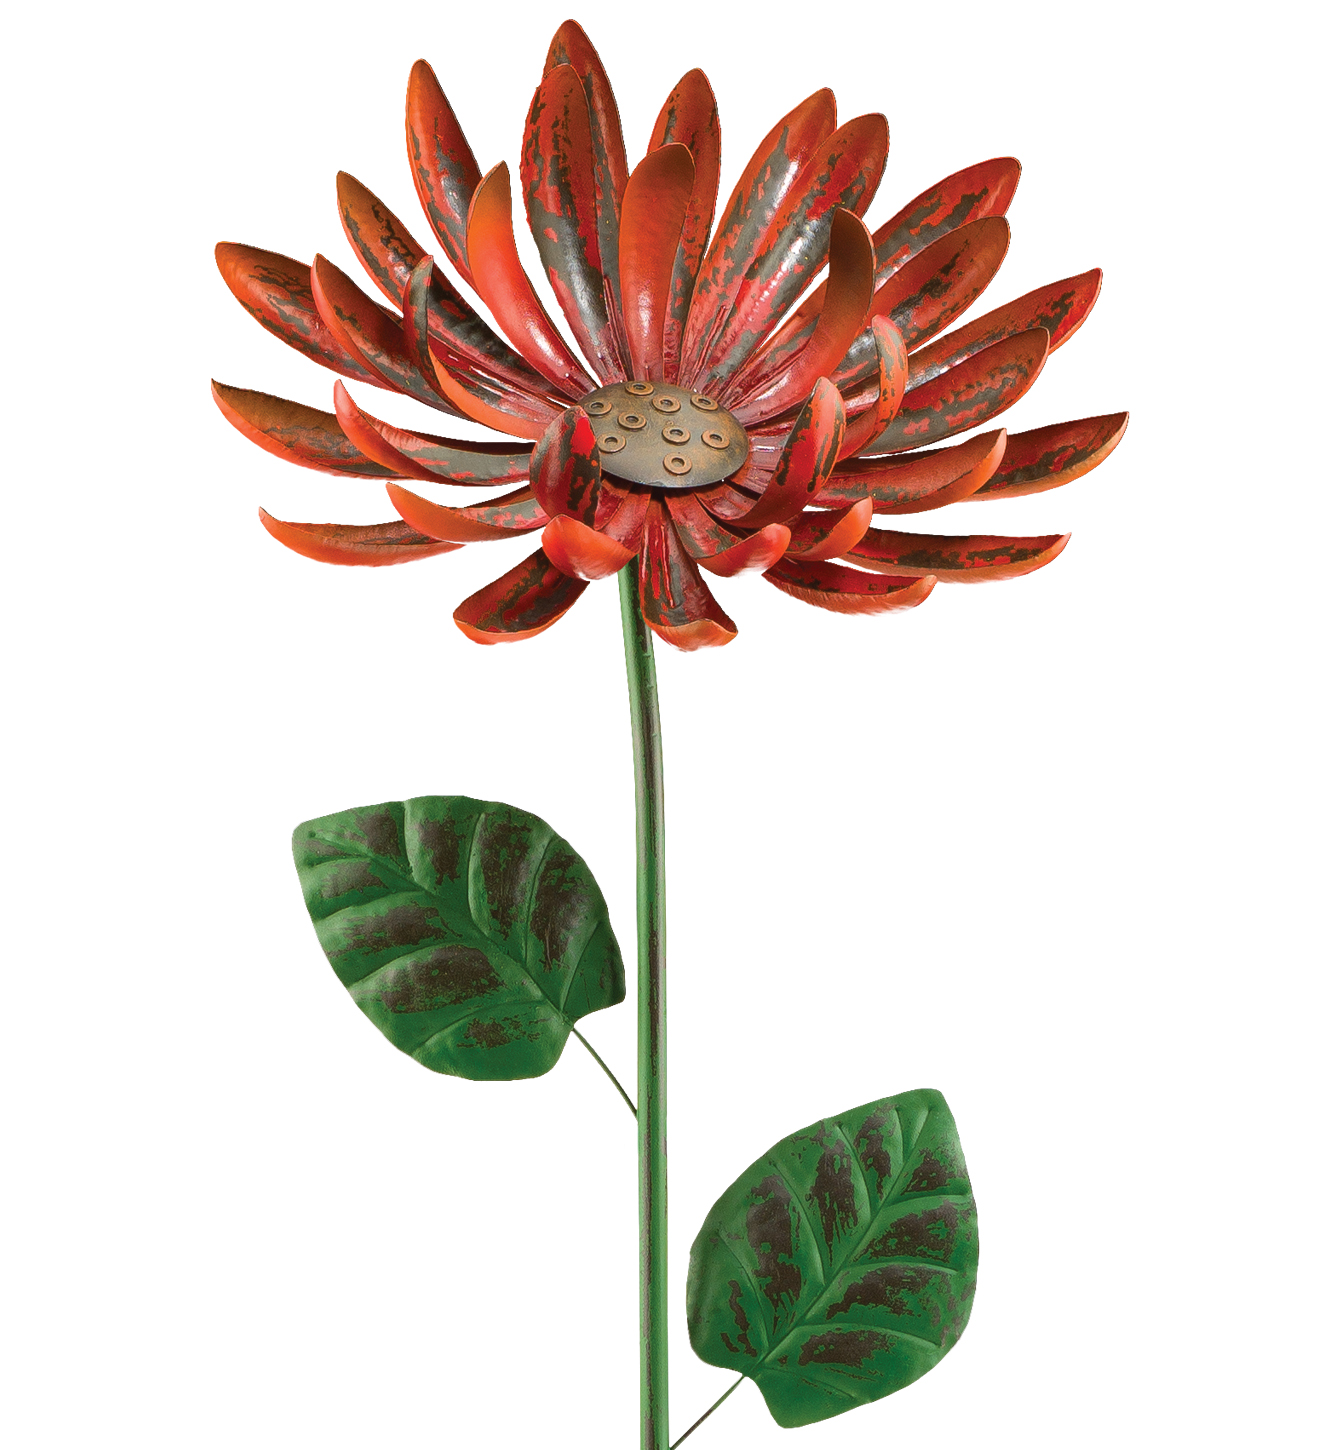 Giant Rustic Flower Stake - Mum